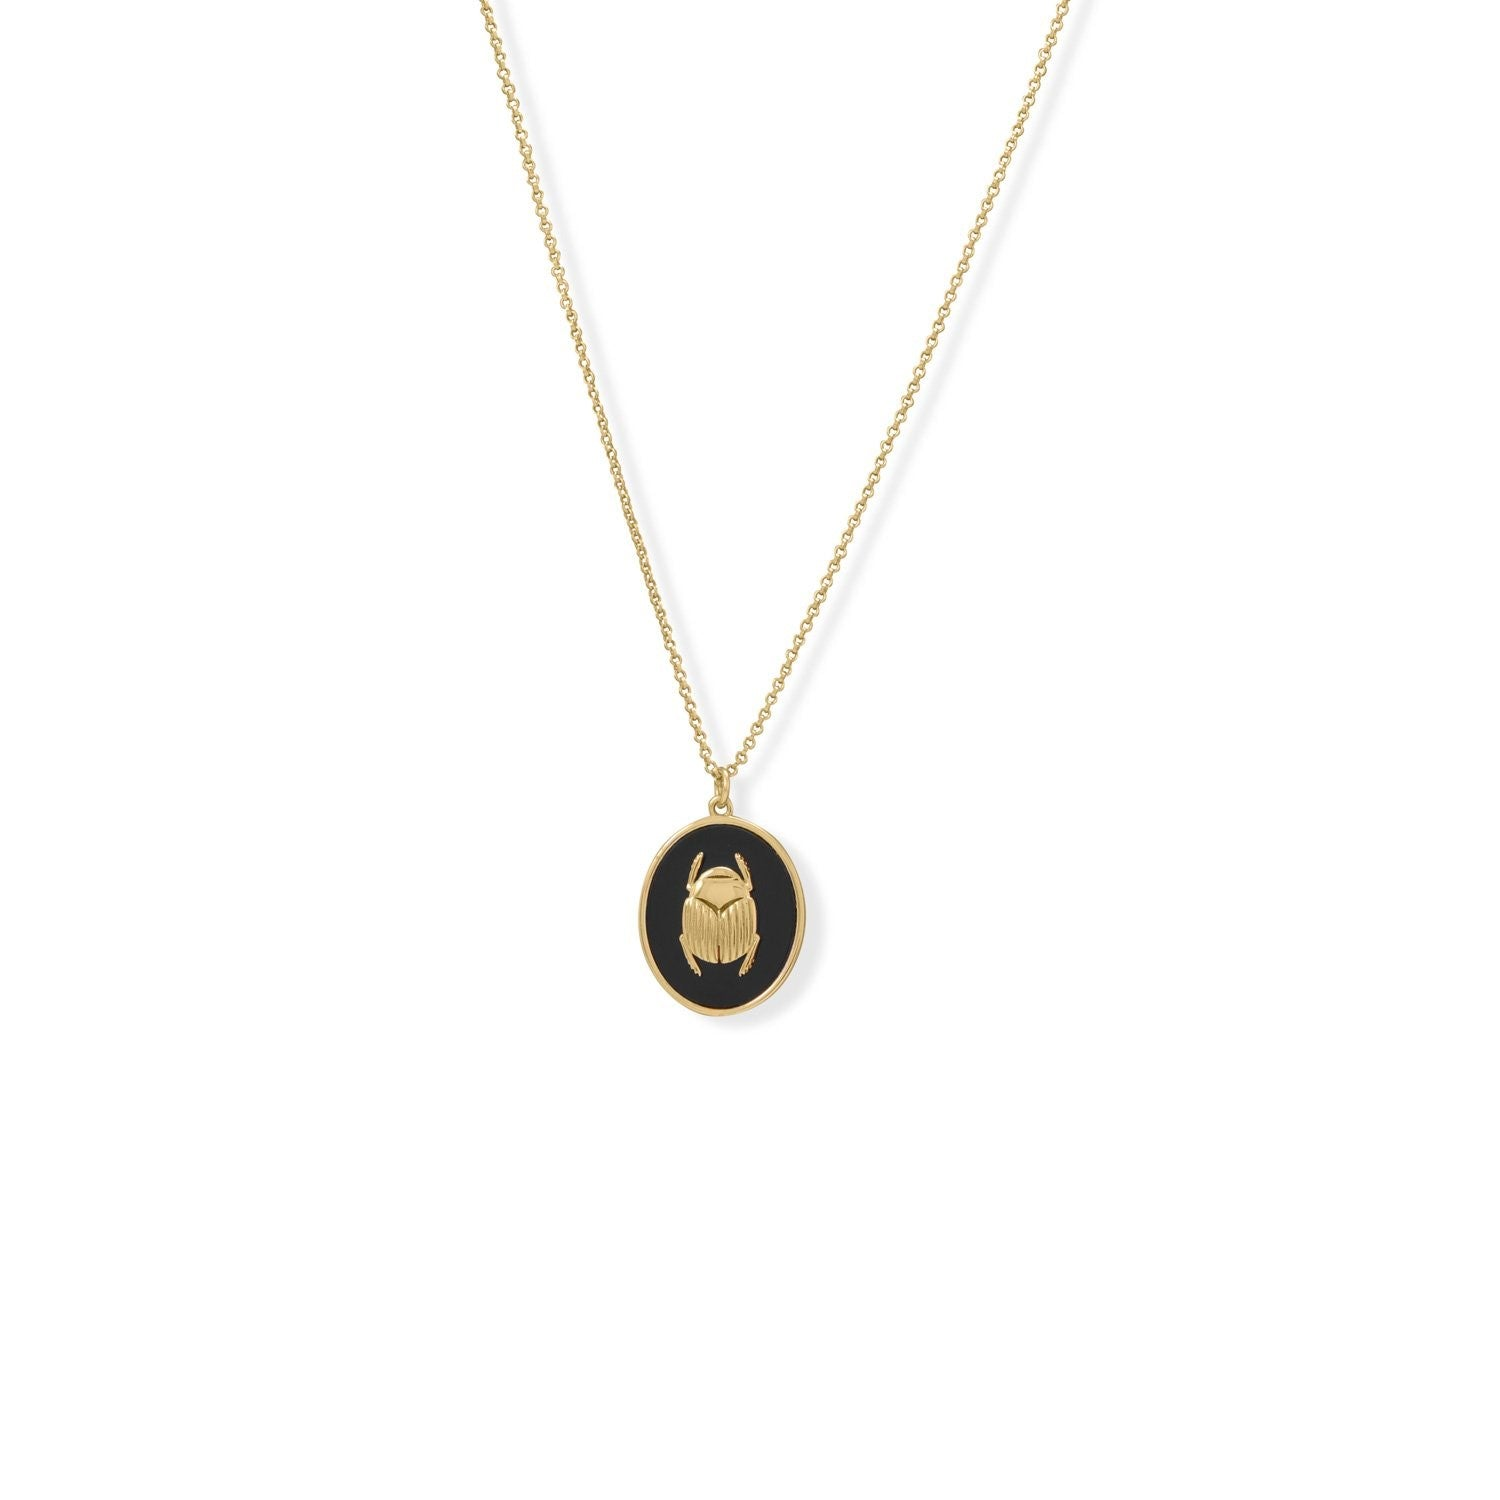 14k Gold Vermeil Black Onyx Necklace